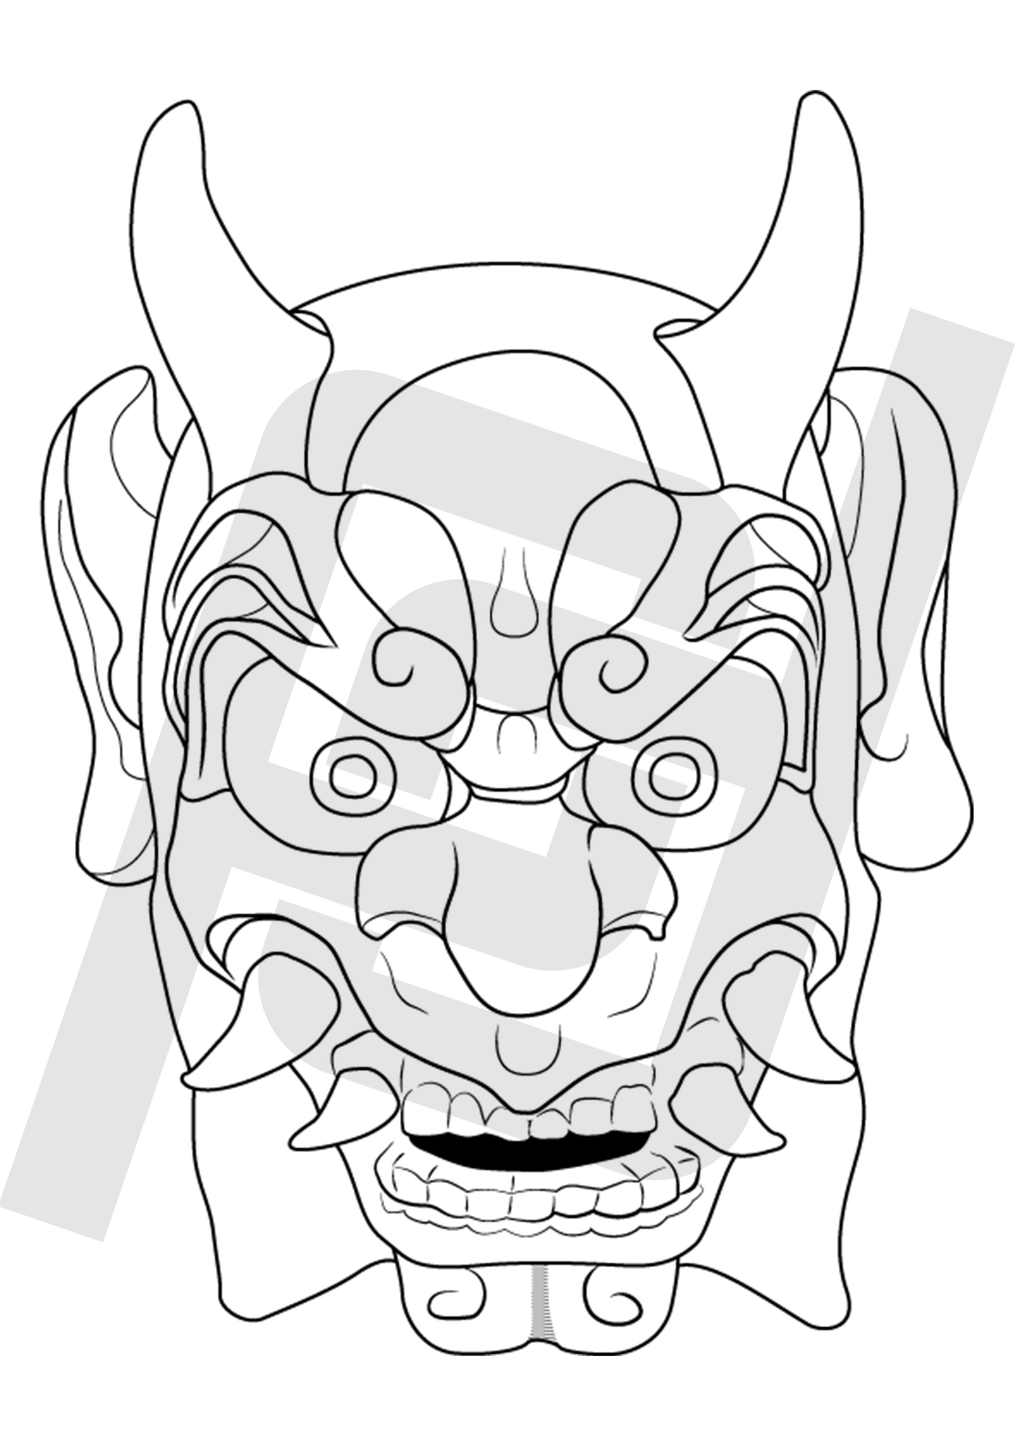 oni mask vector by pulpetmaster on deviantart